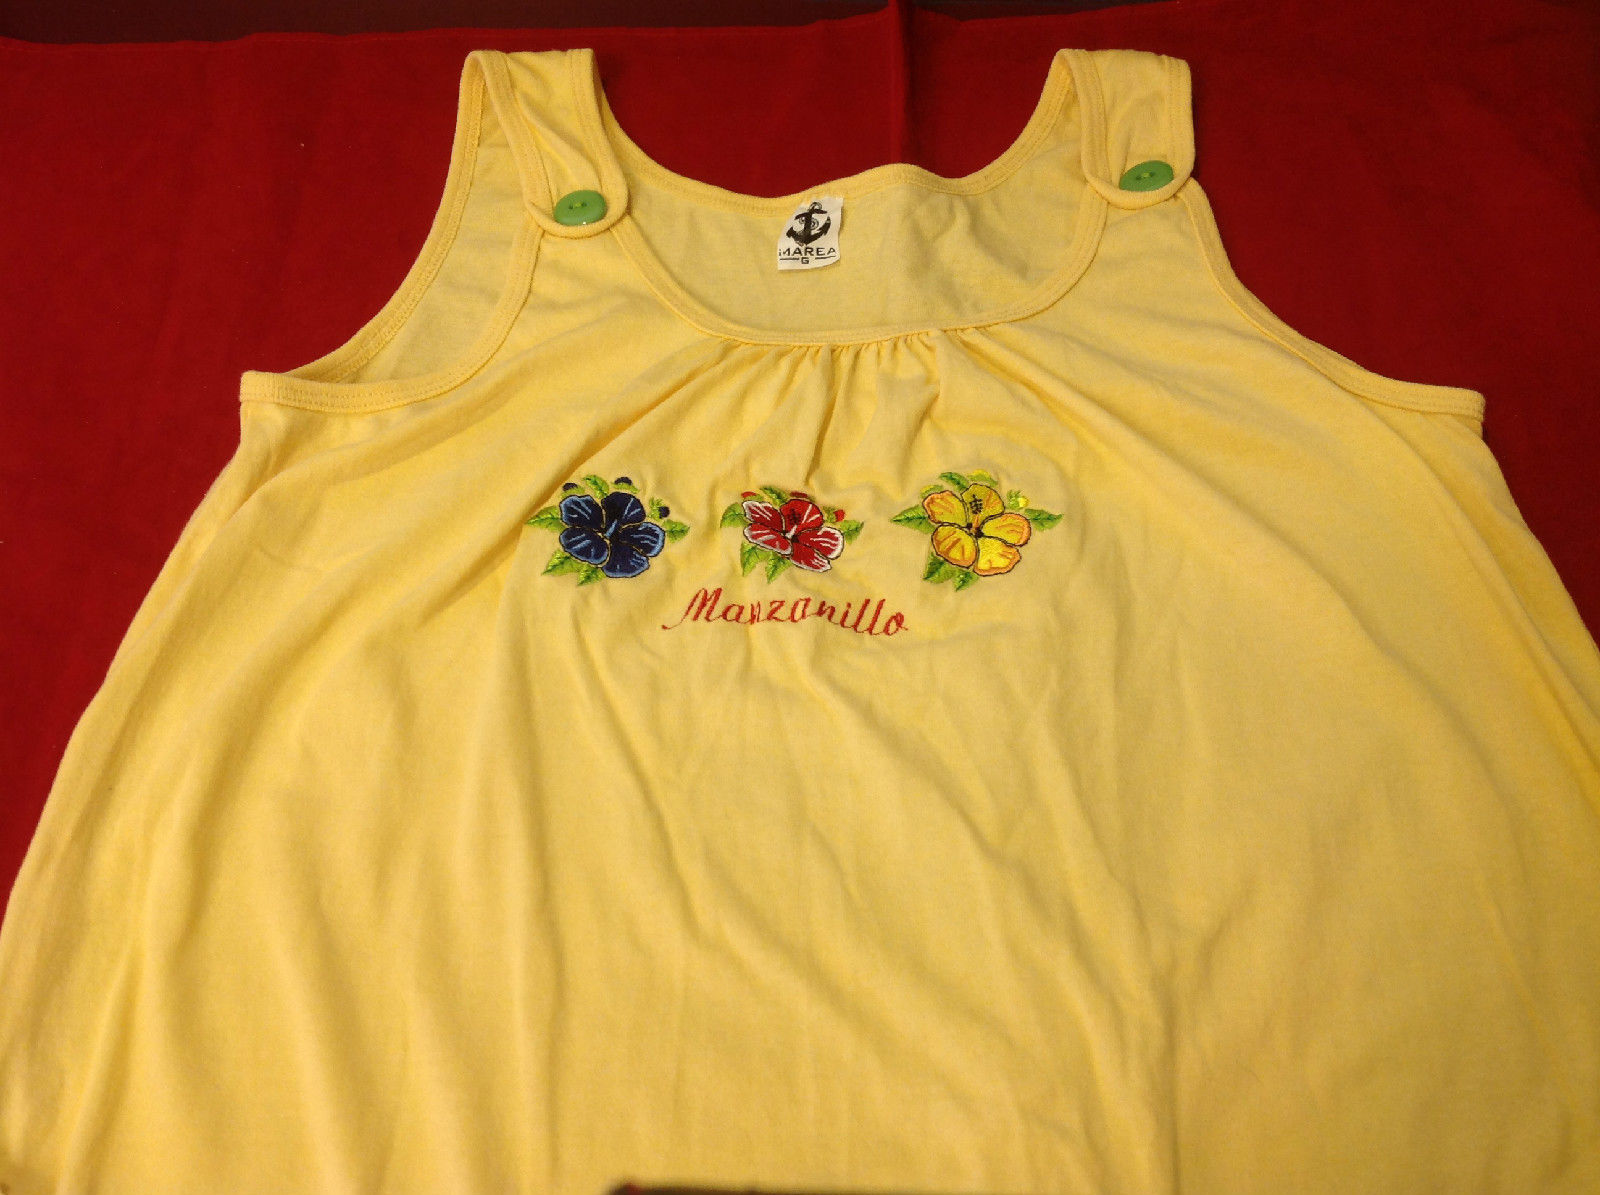 Cute Manzanillo Imarea Girls Yellow Sleeveless Dress with 3 flowers on front